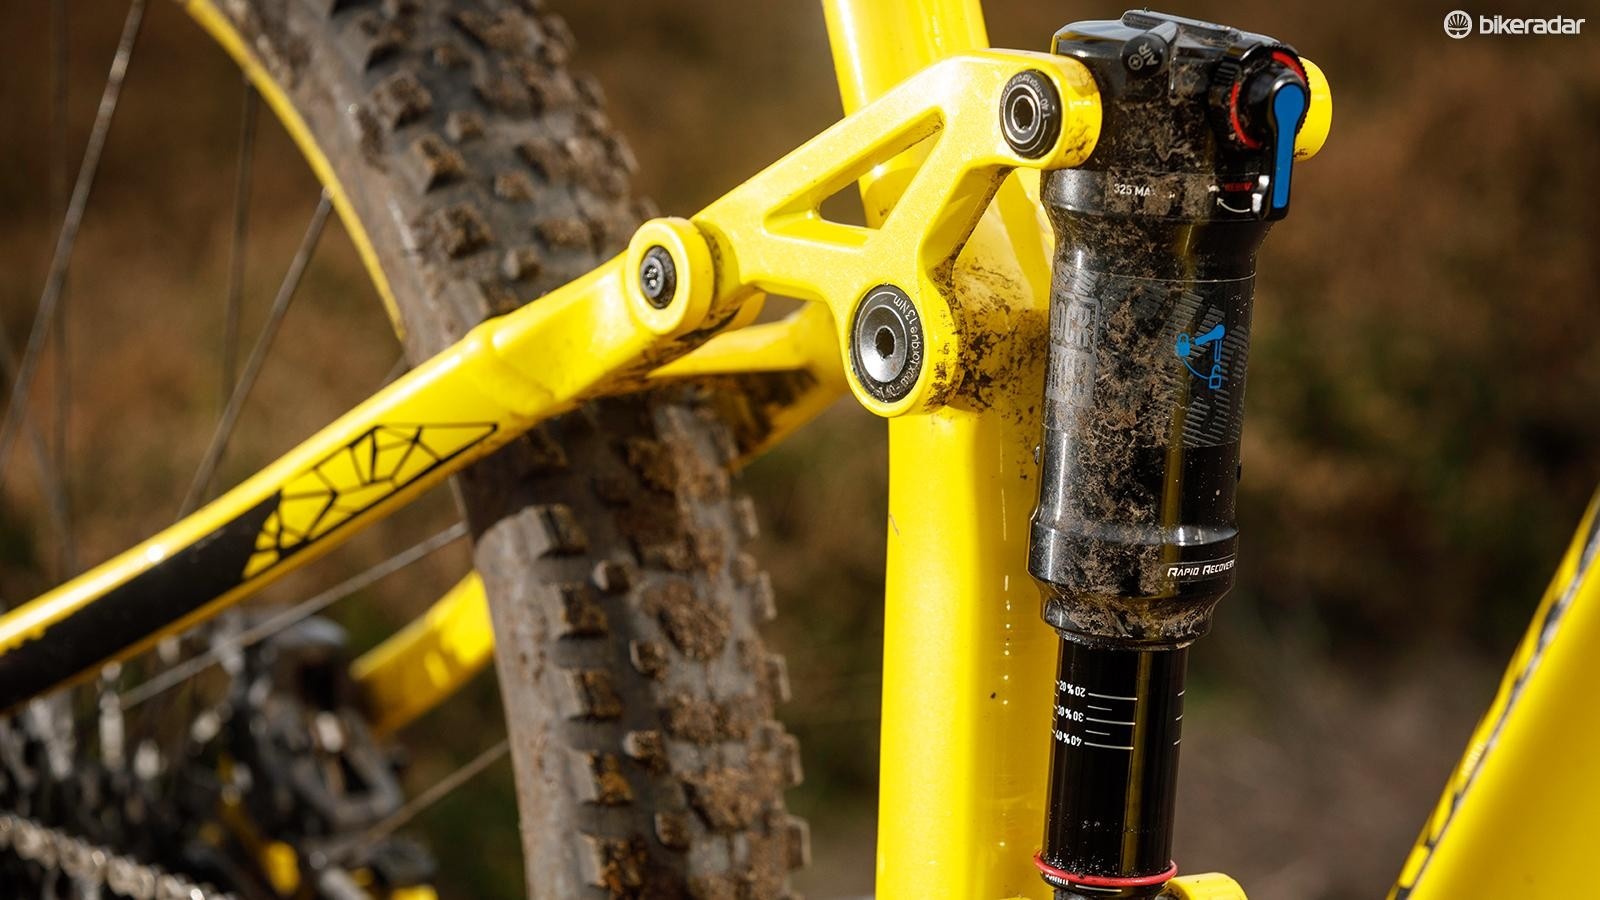 The 'floating' shock (it's attached to the linkage at both ends) delivers a supple feel